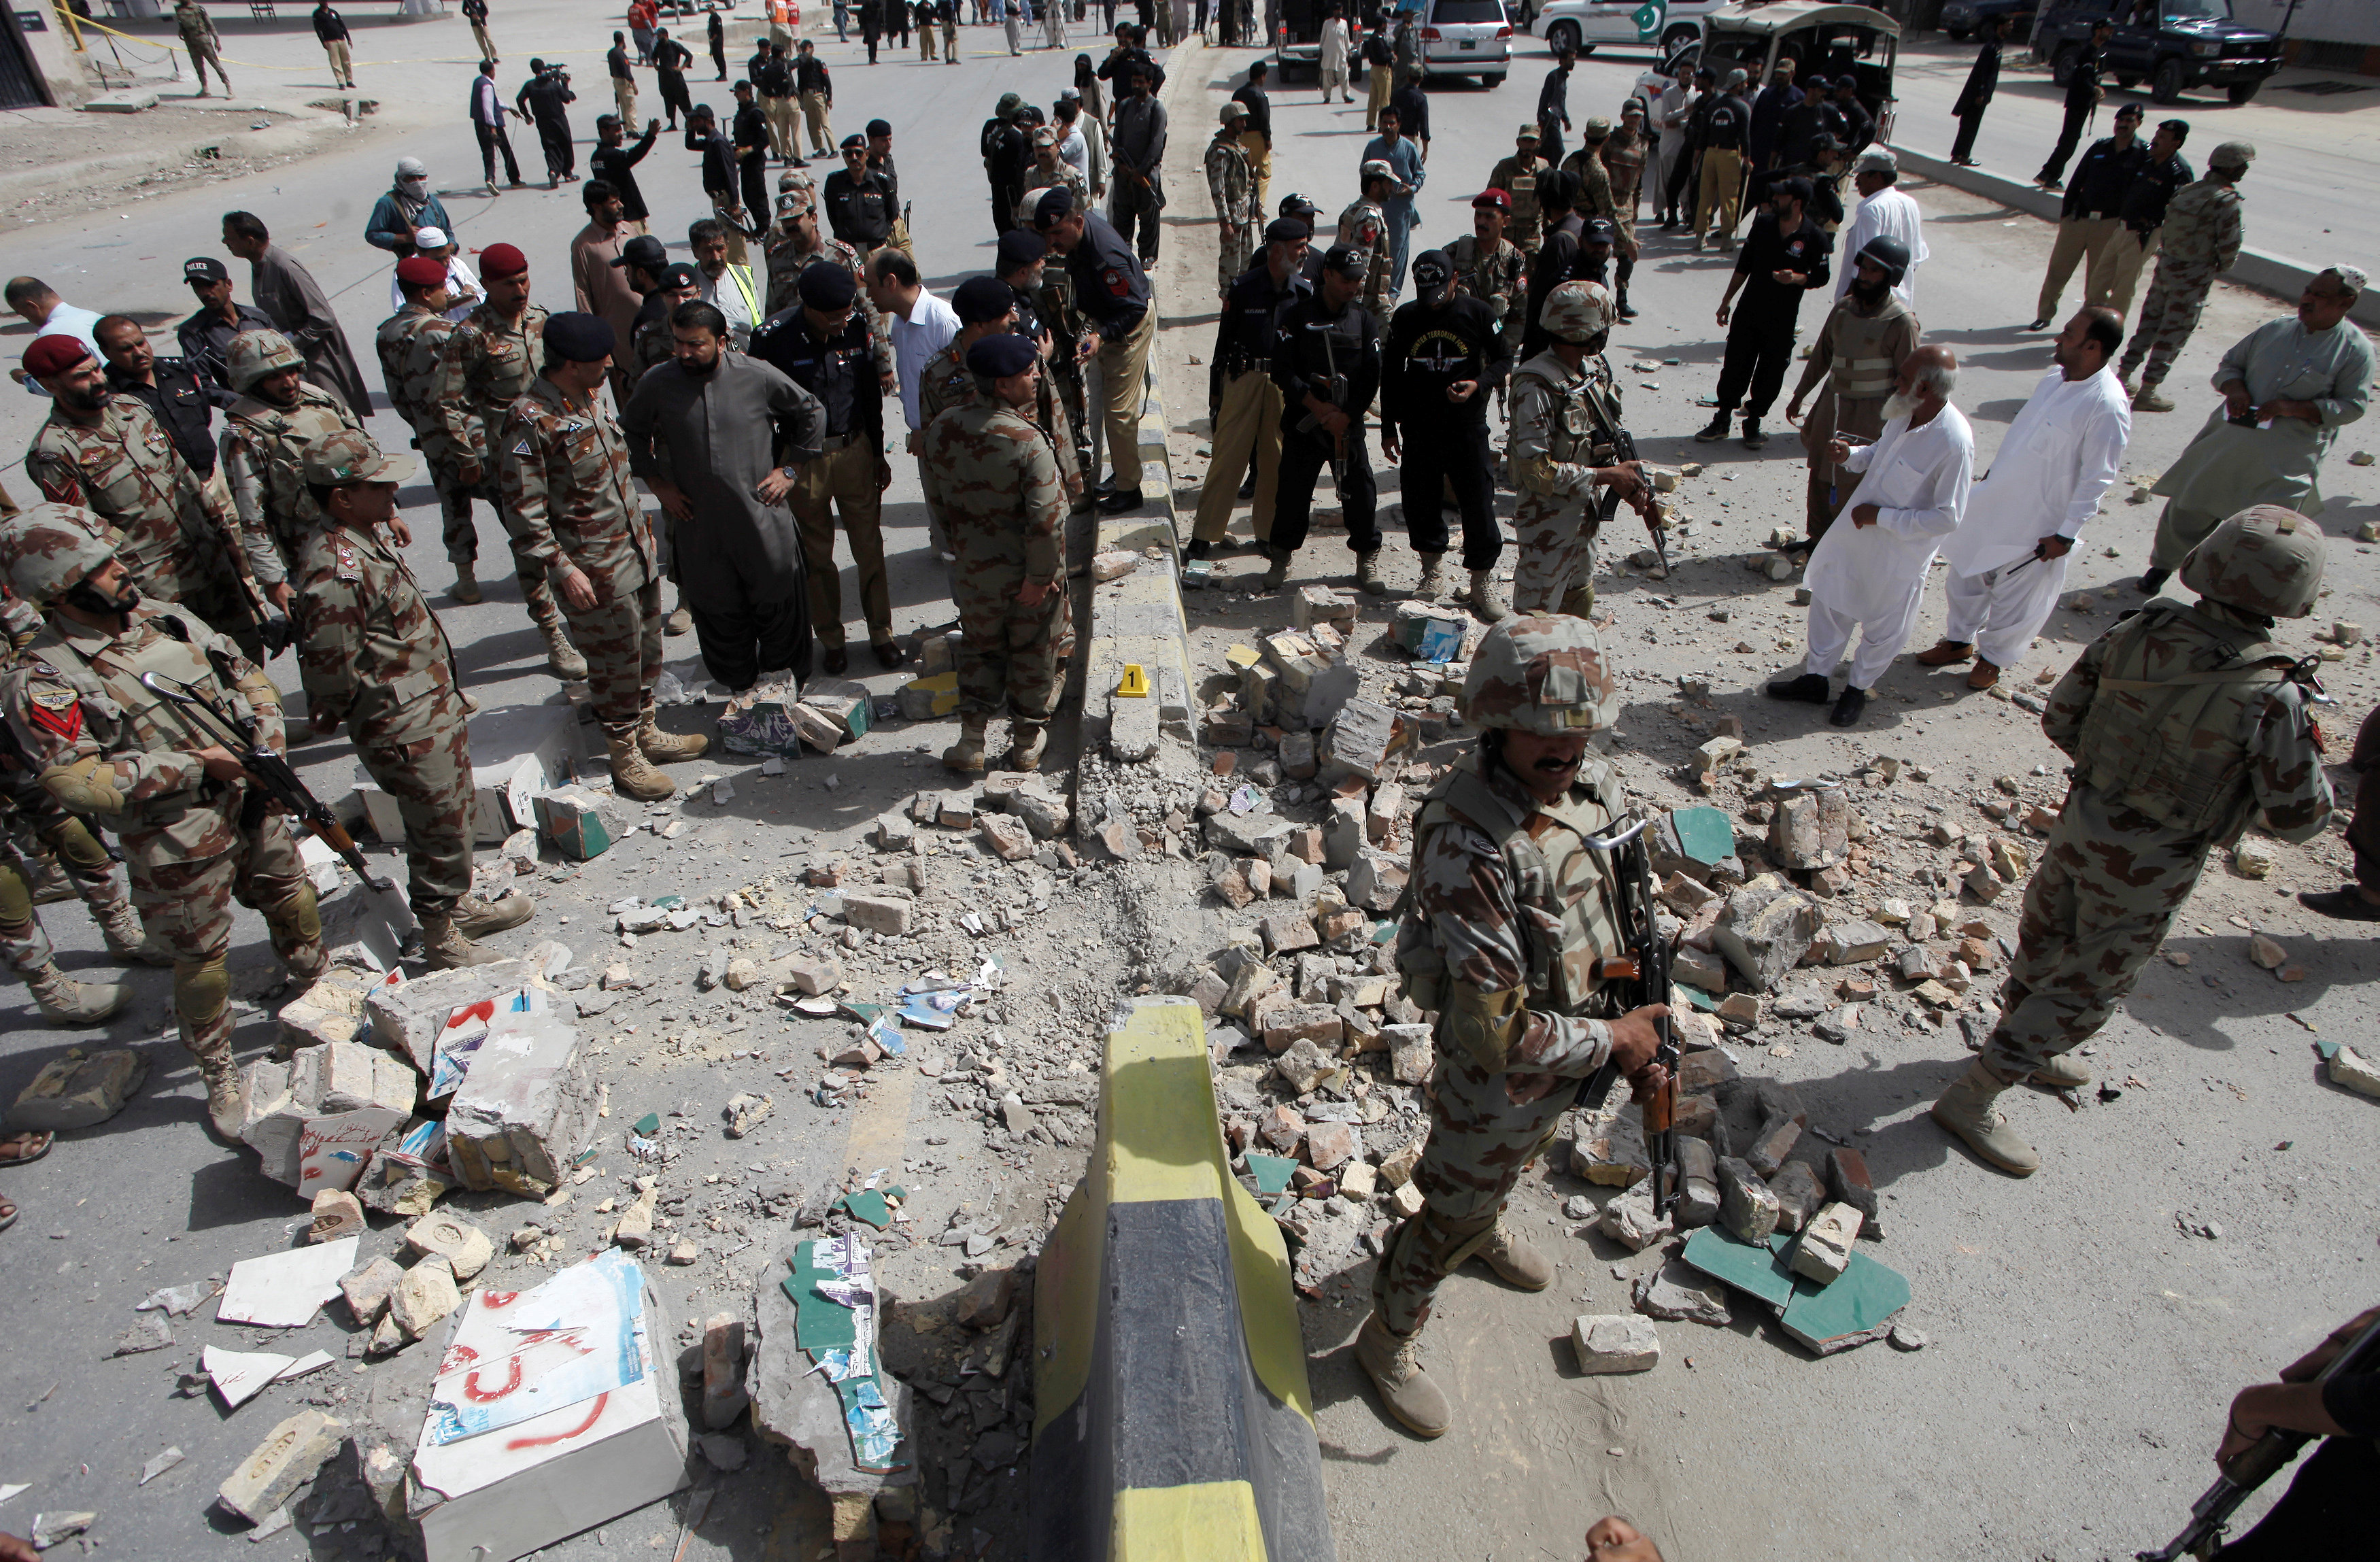 Security officials gather at the site of a bomb explosion in Quetta, Pakistan,